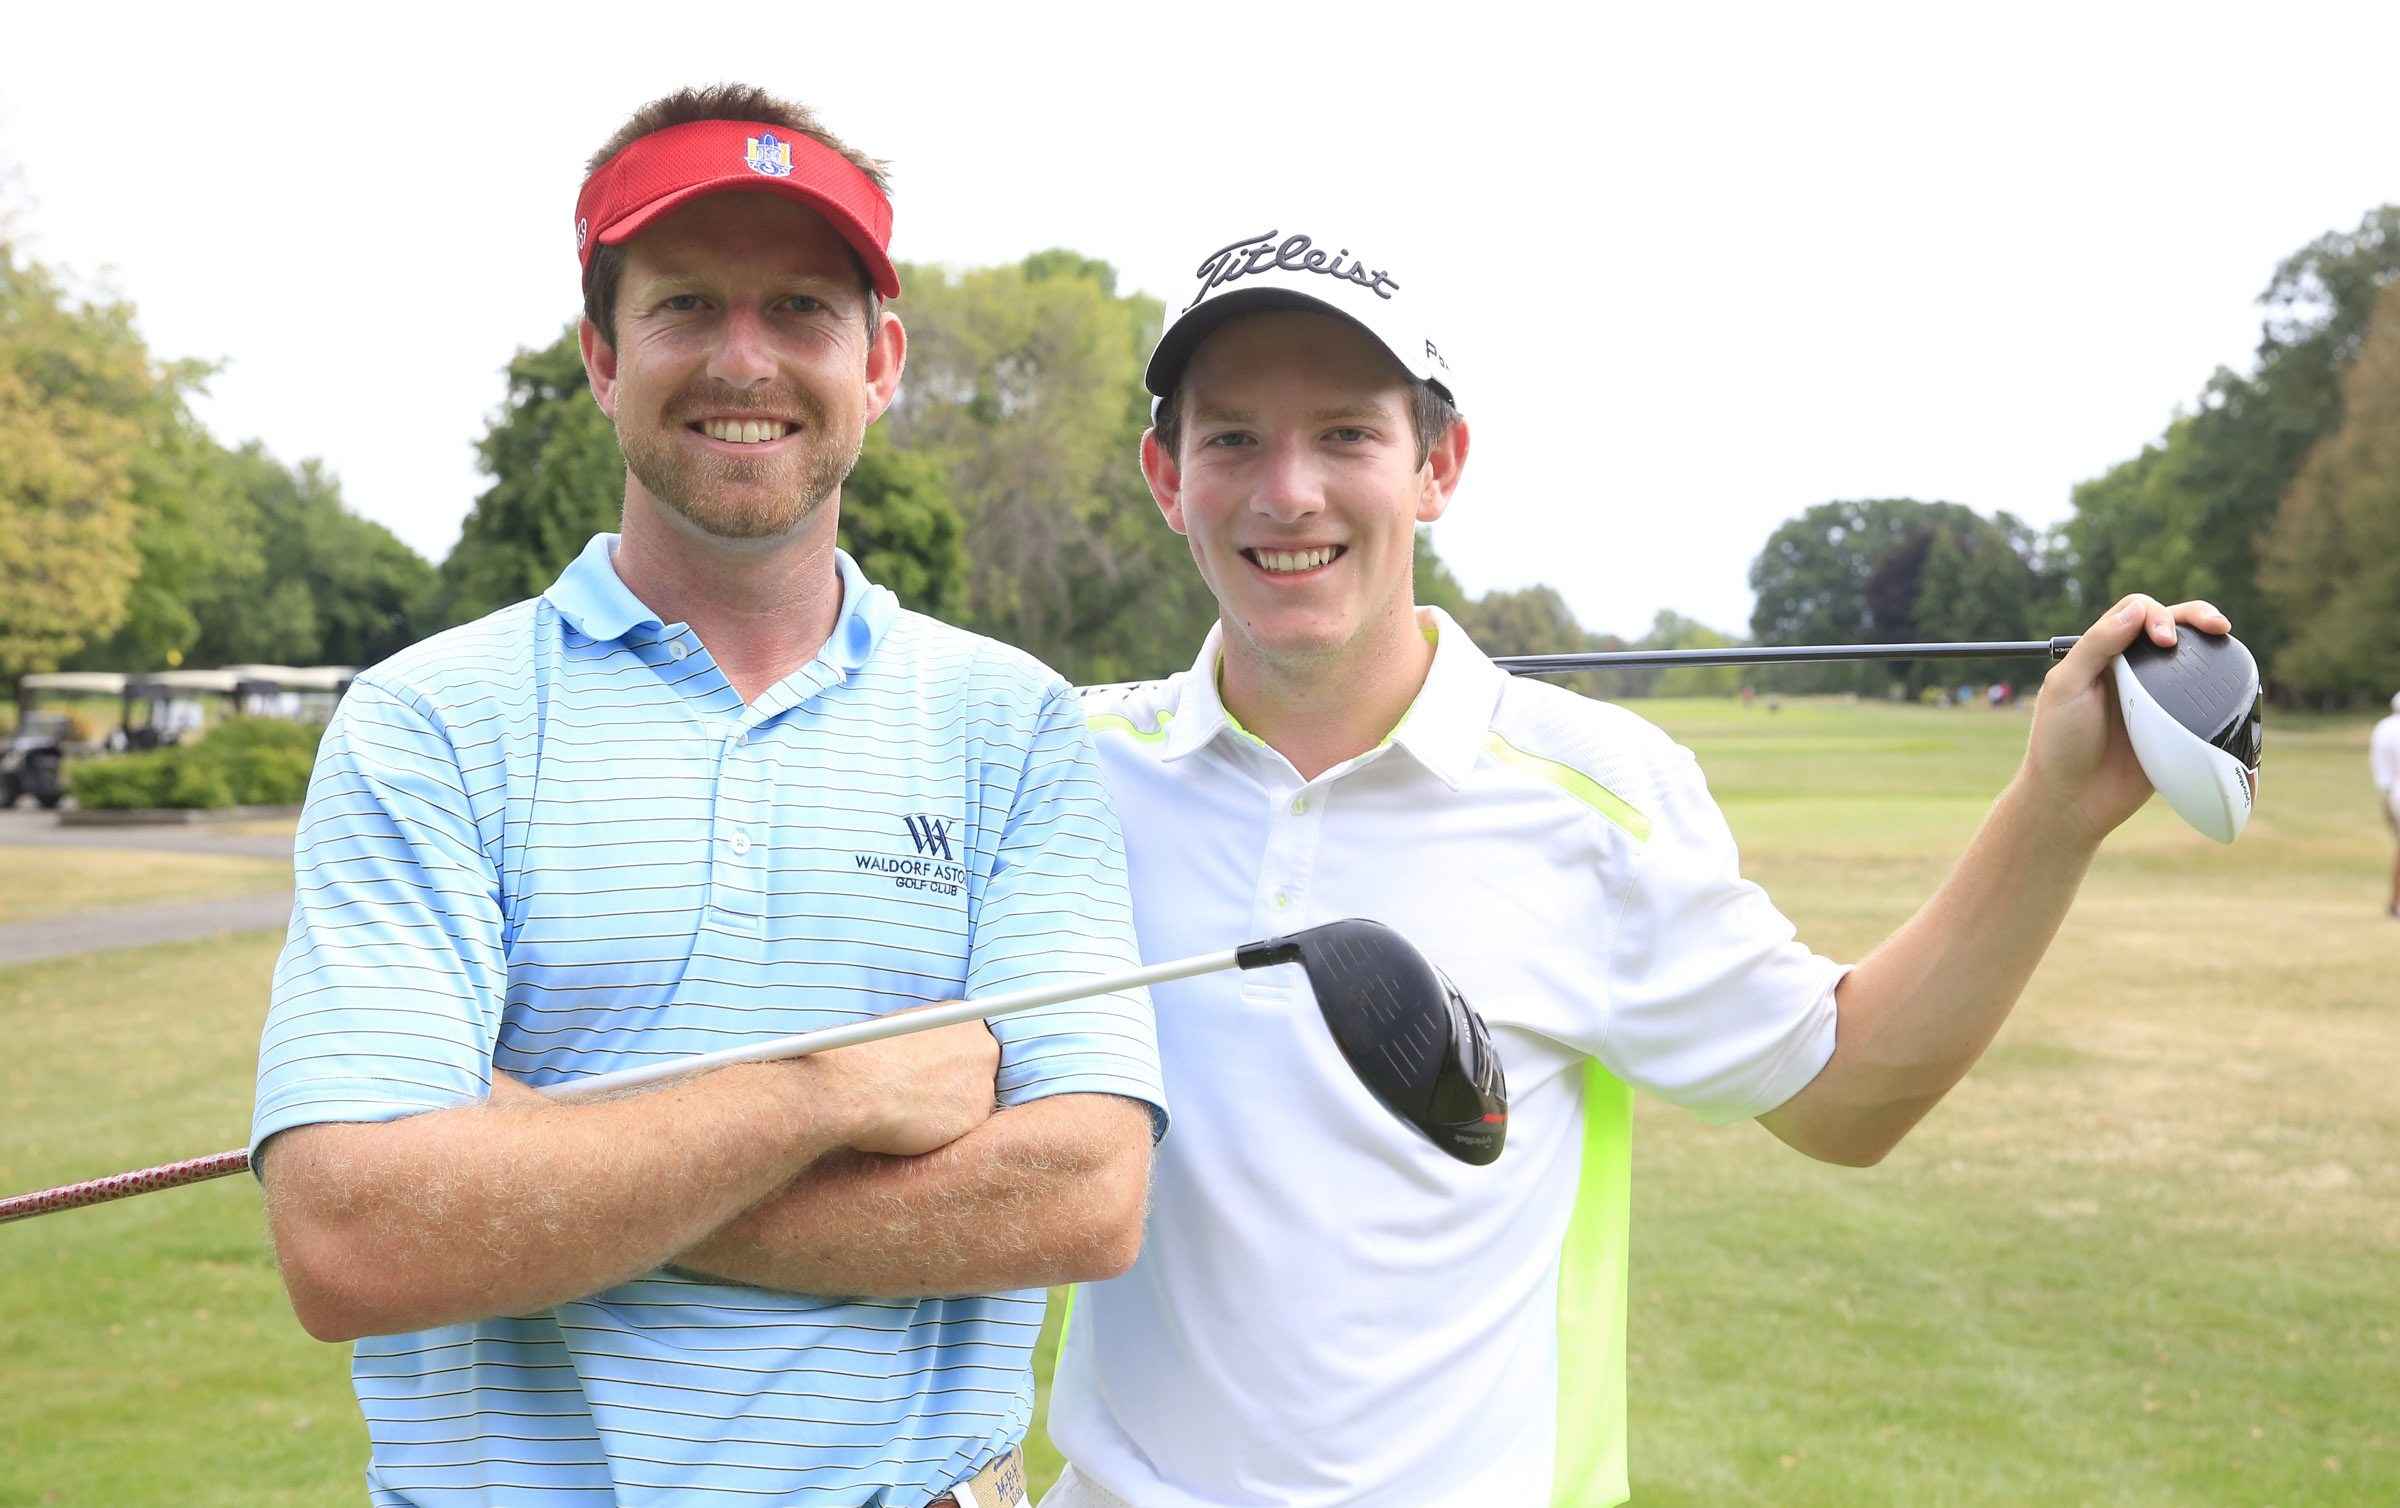 Brothers Billy and David Hanes are both taking part in the Porter Cup, and David has had the advantage so far.